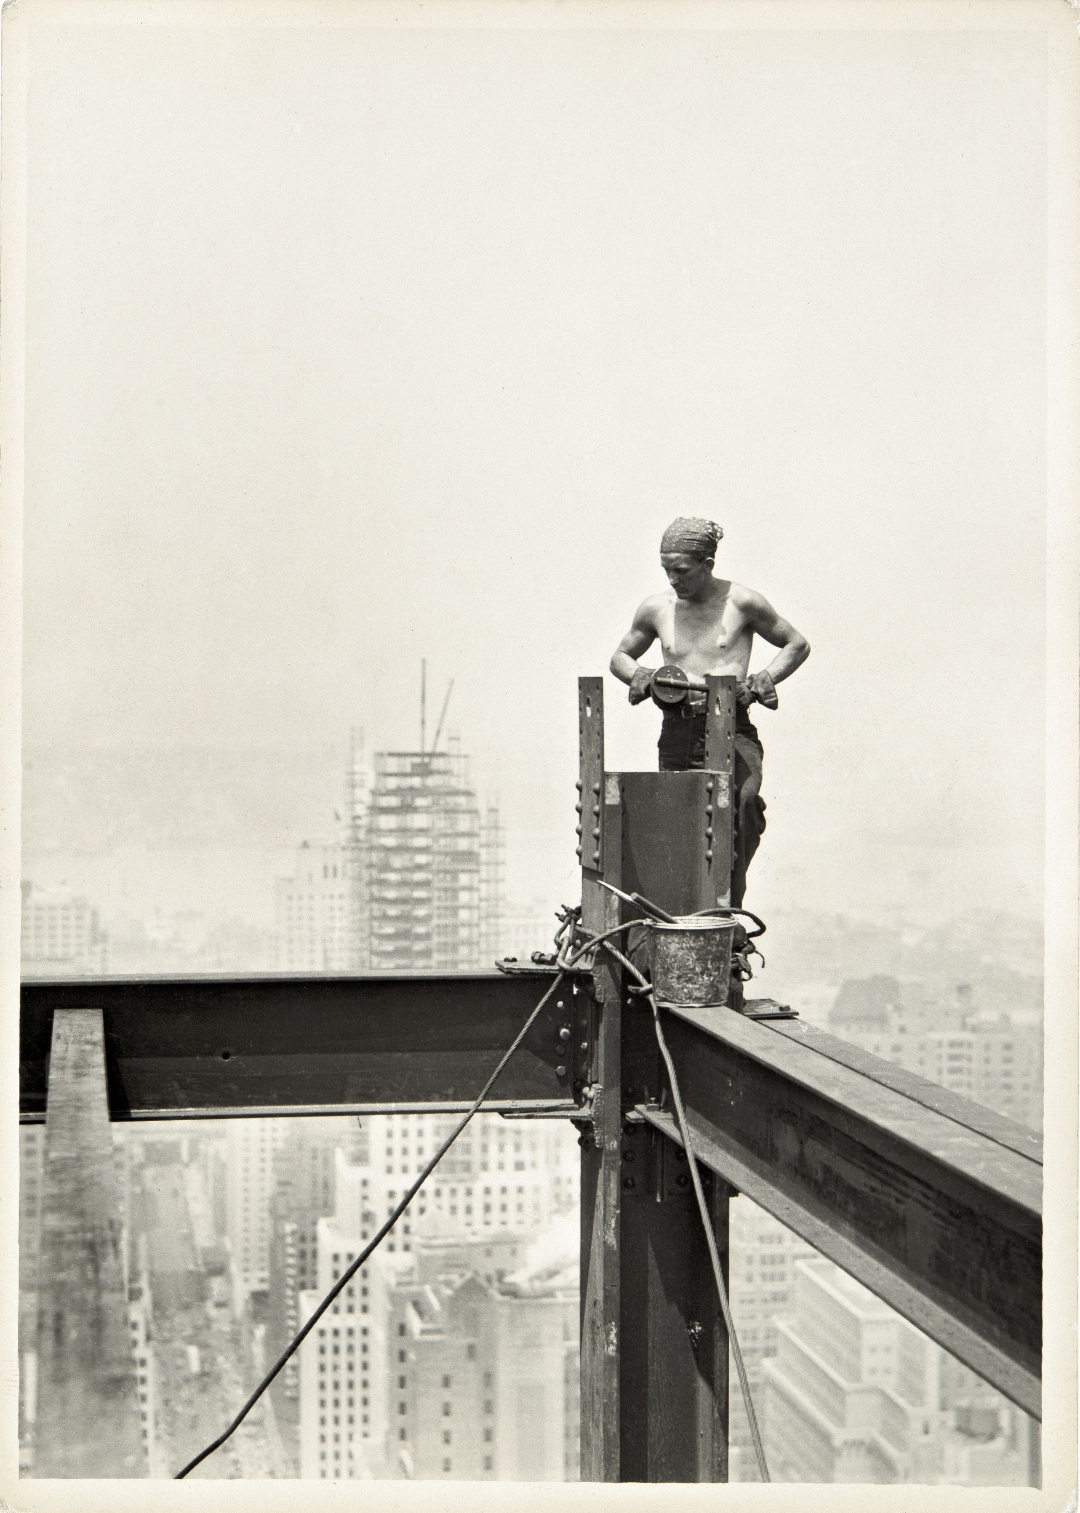 © Lewis Hine: On The Hoist, Empire State Building, 1931